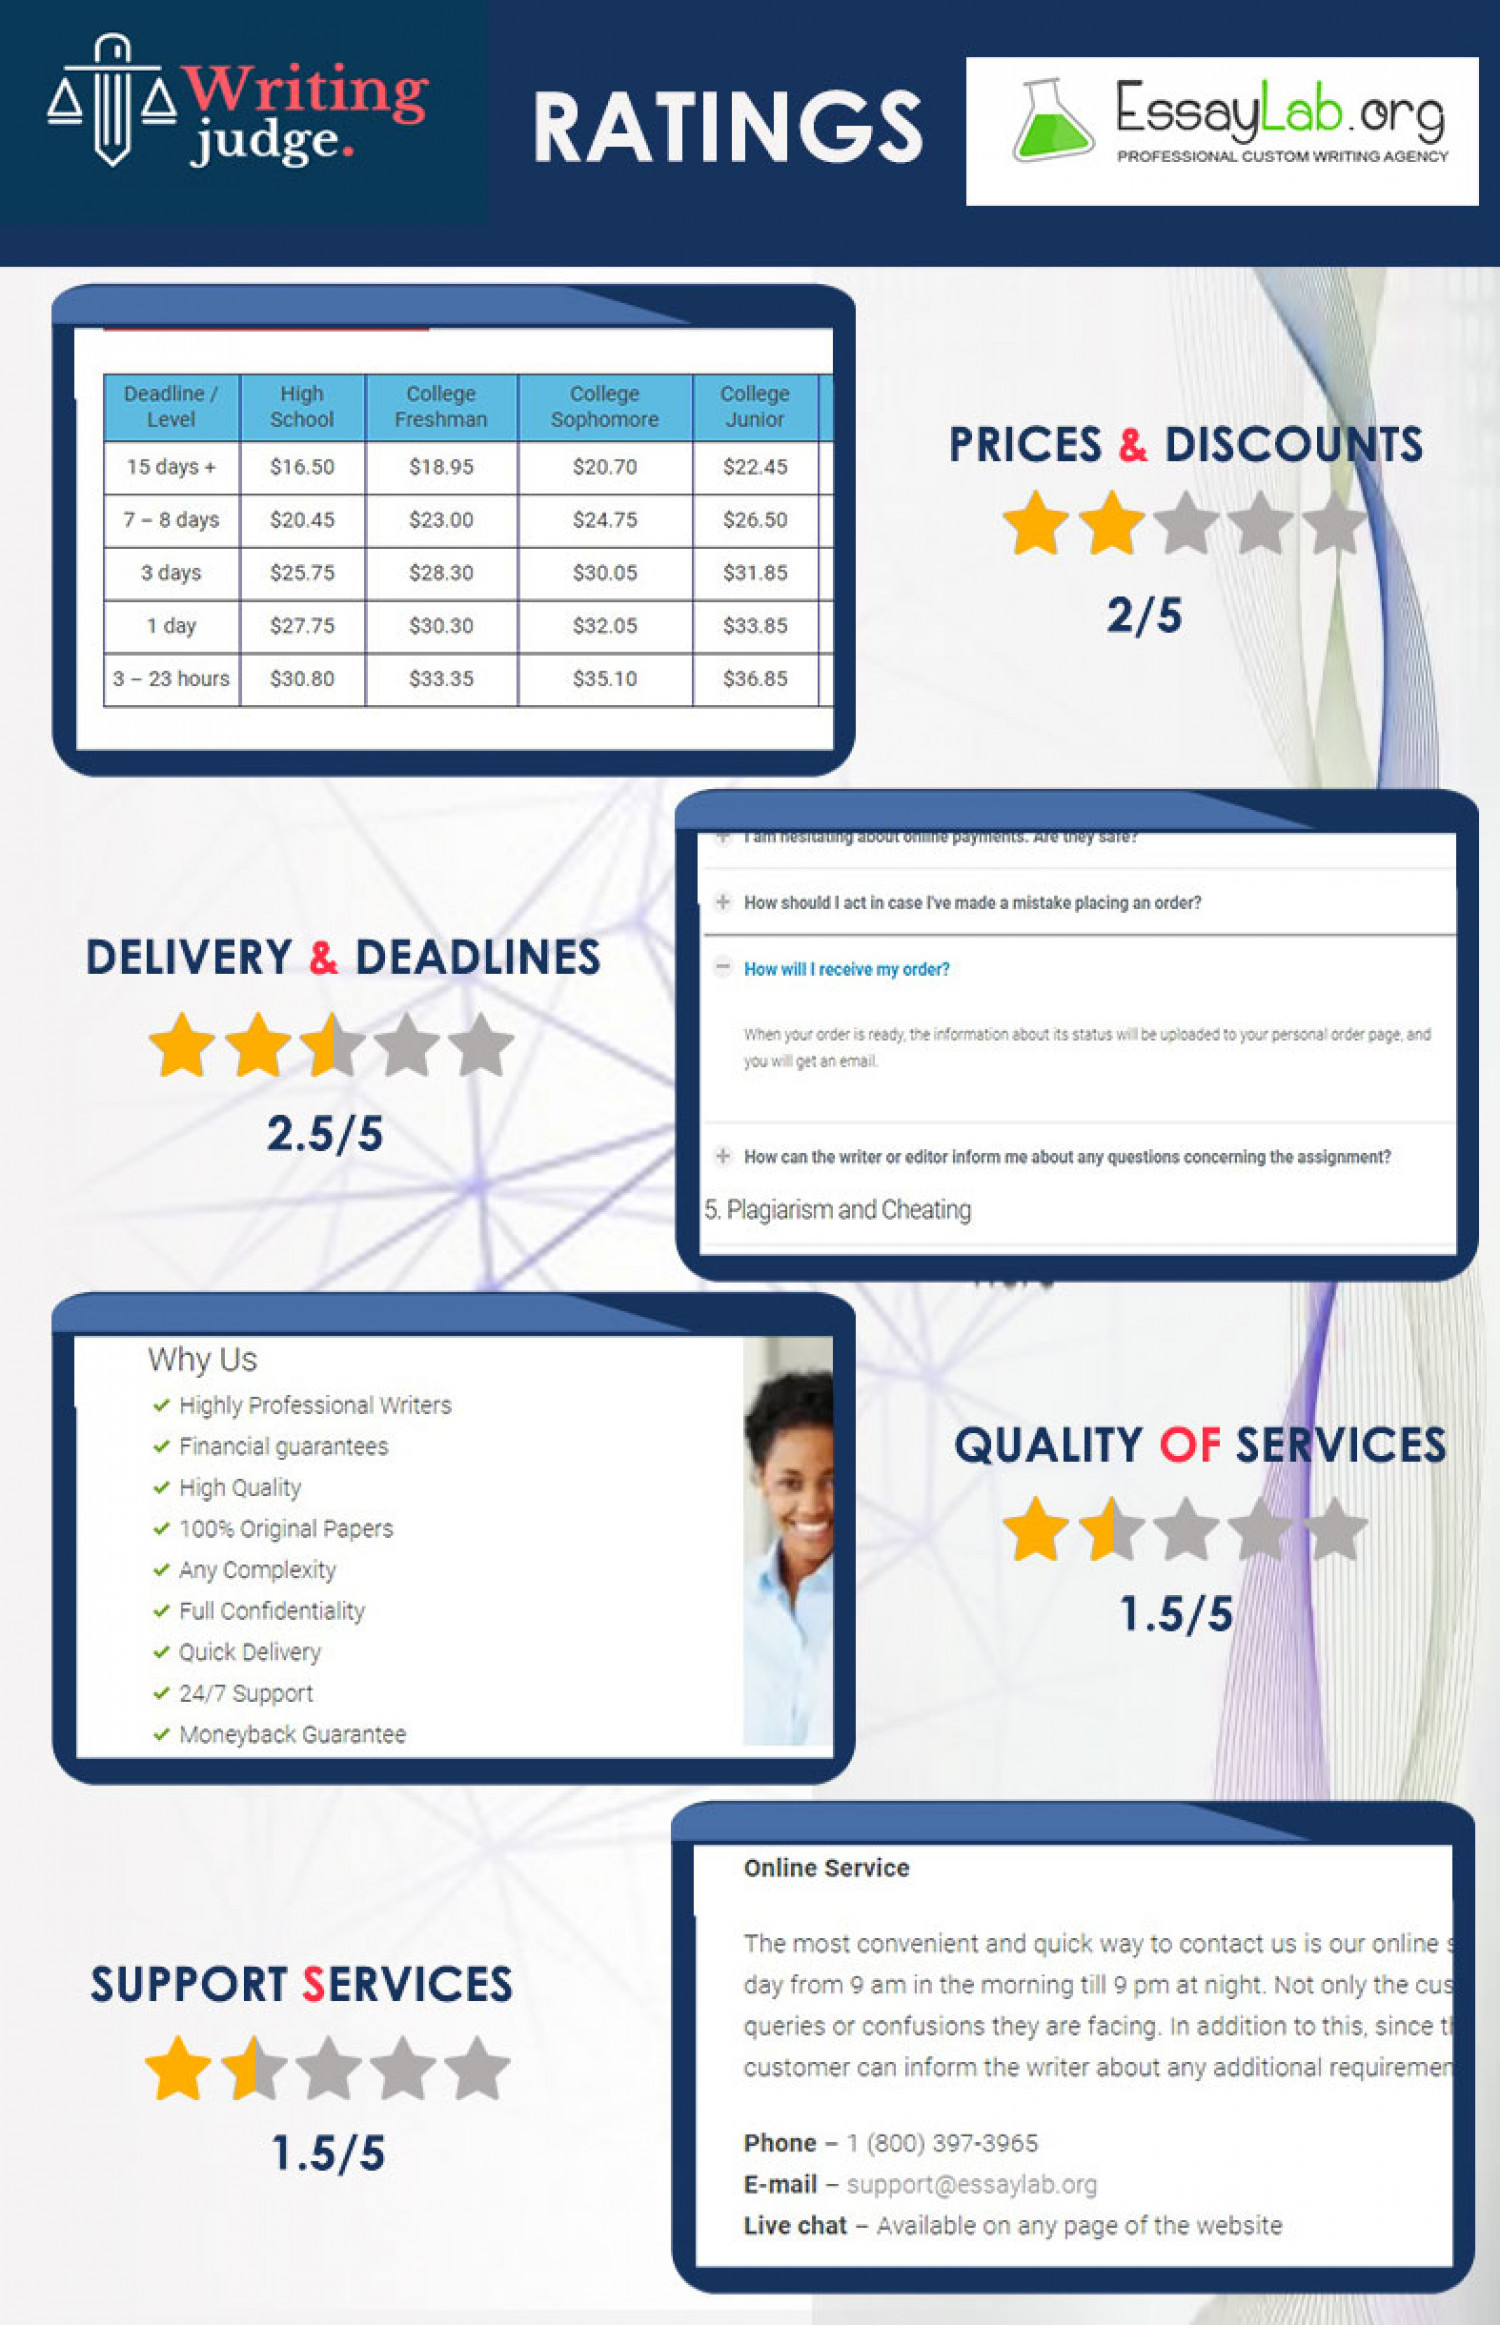 Core attributes of a reliable paper writing service. Analyze the list and keep on top with Writing Judge. Infographic